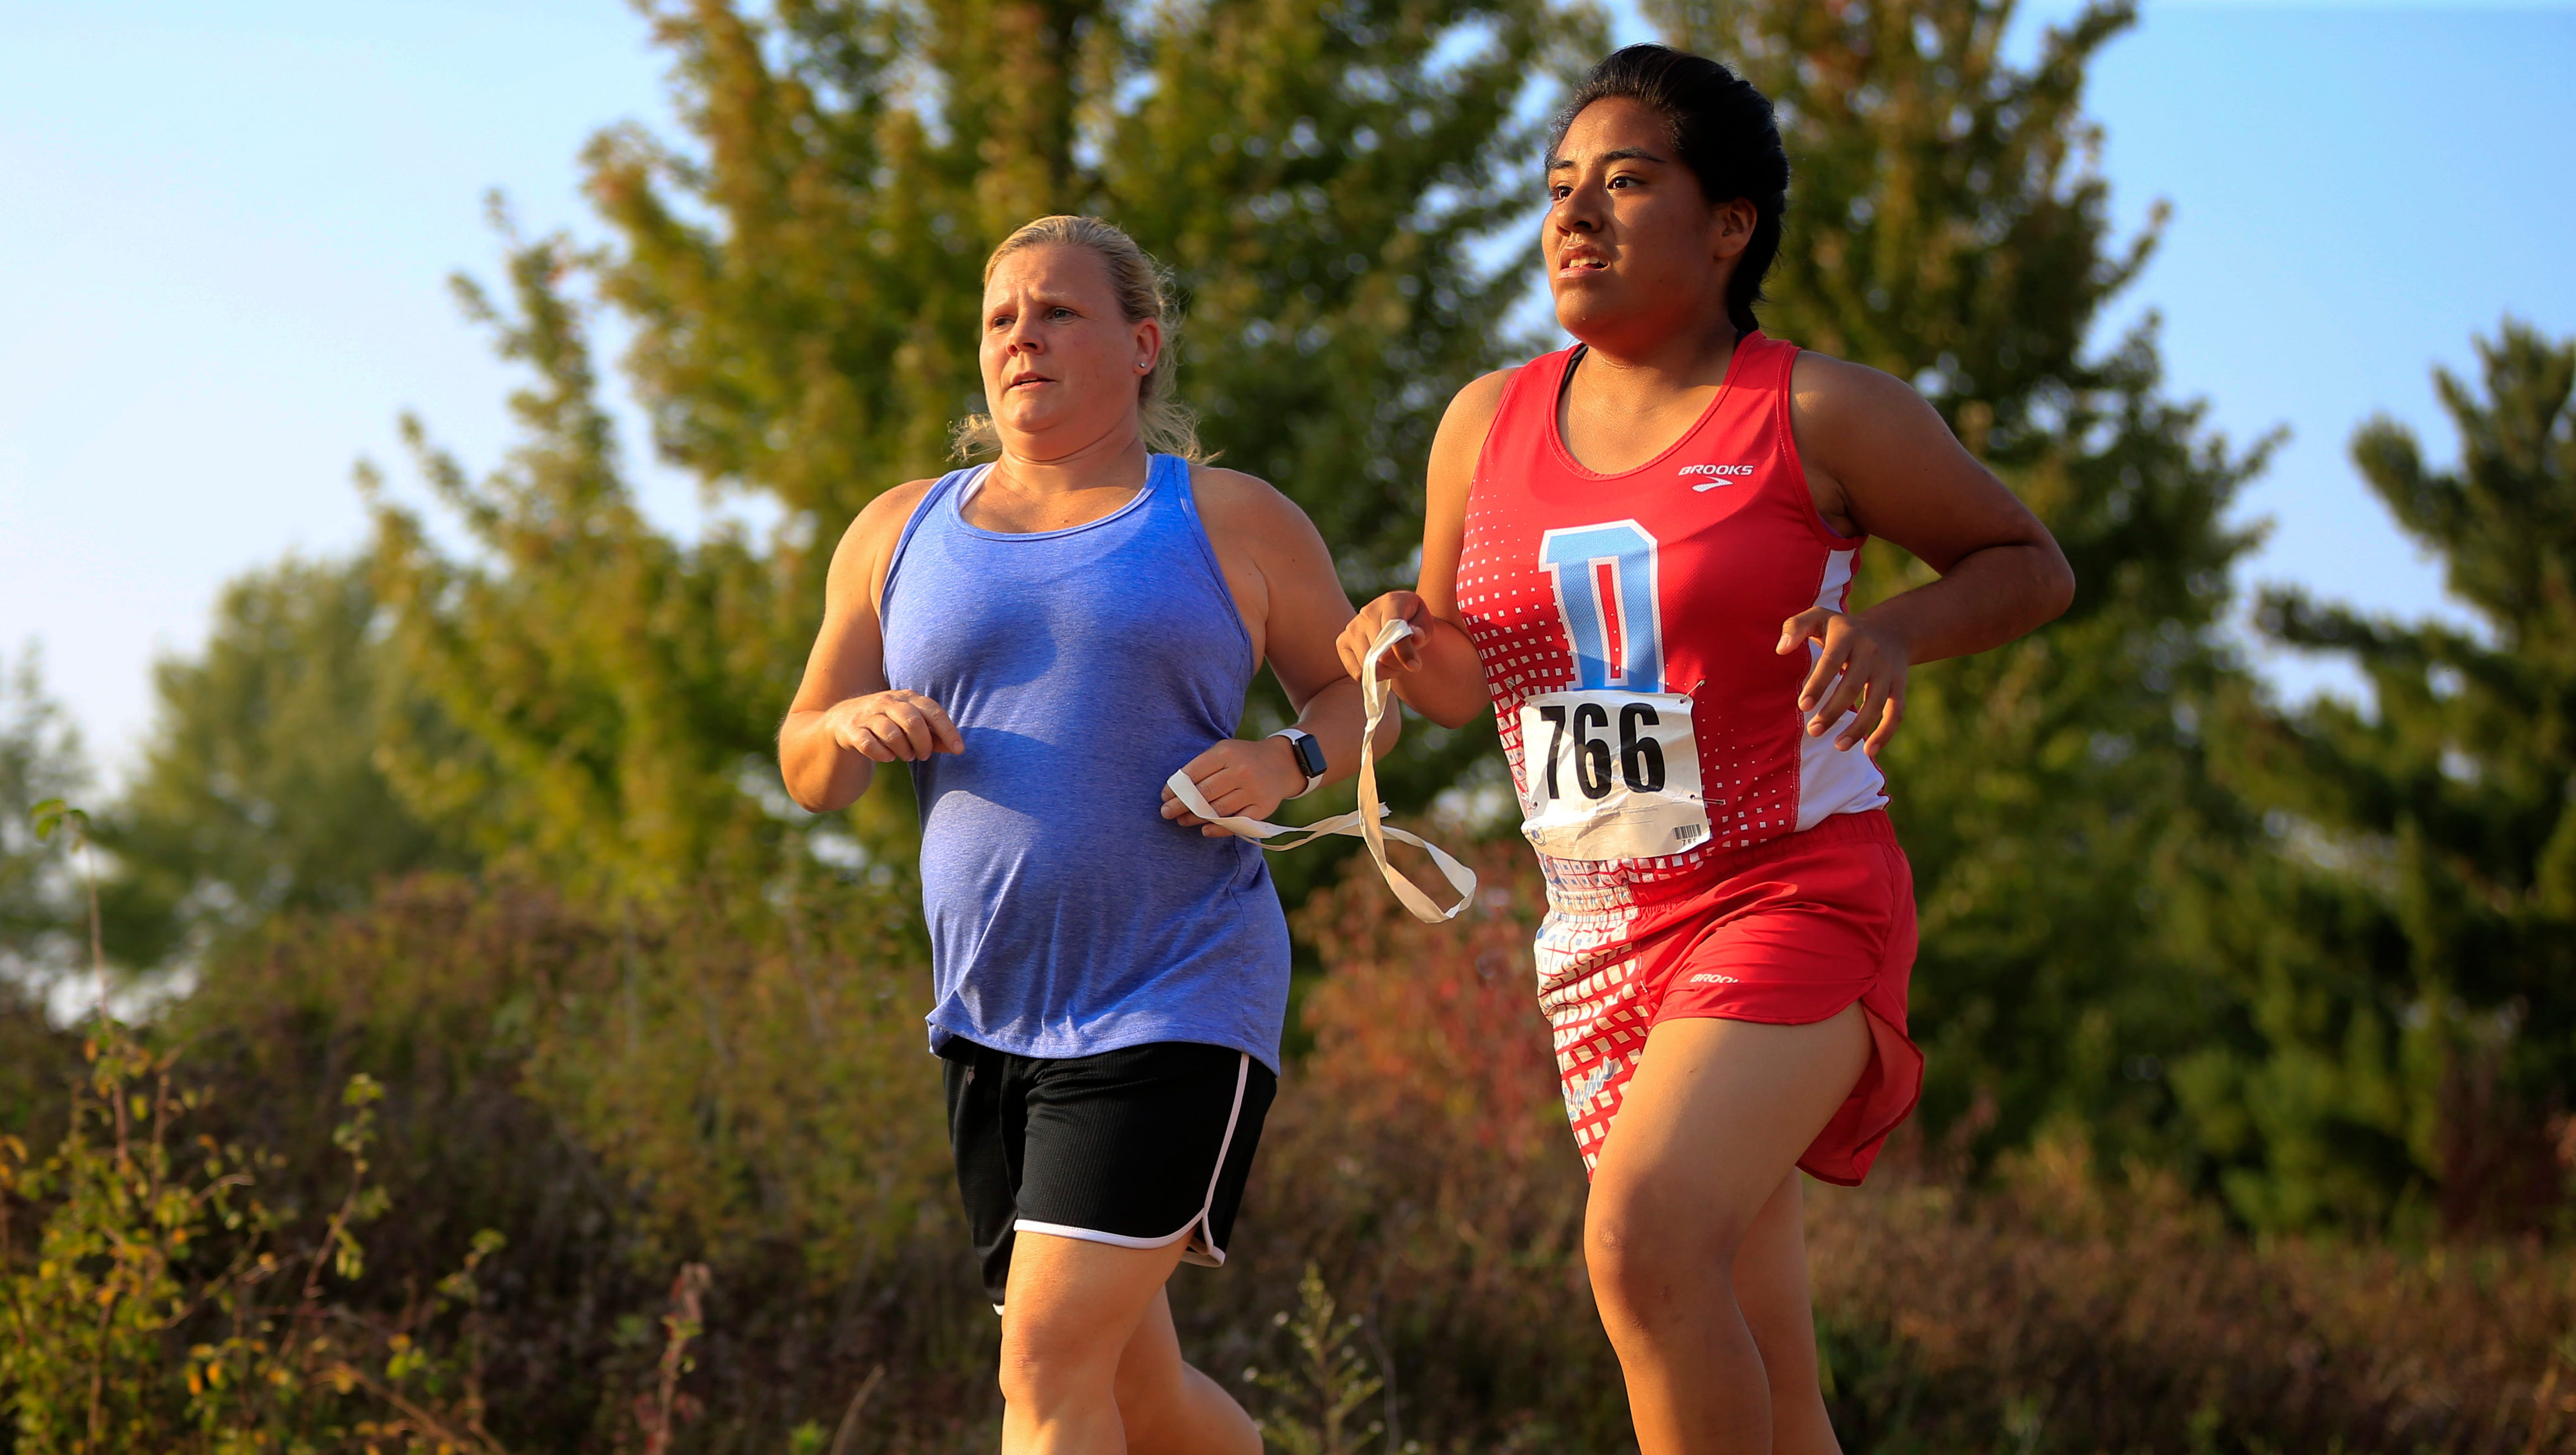 Blind Iowan joins cross country team, finds bliss on the track